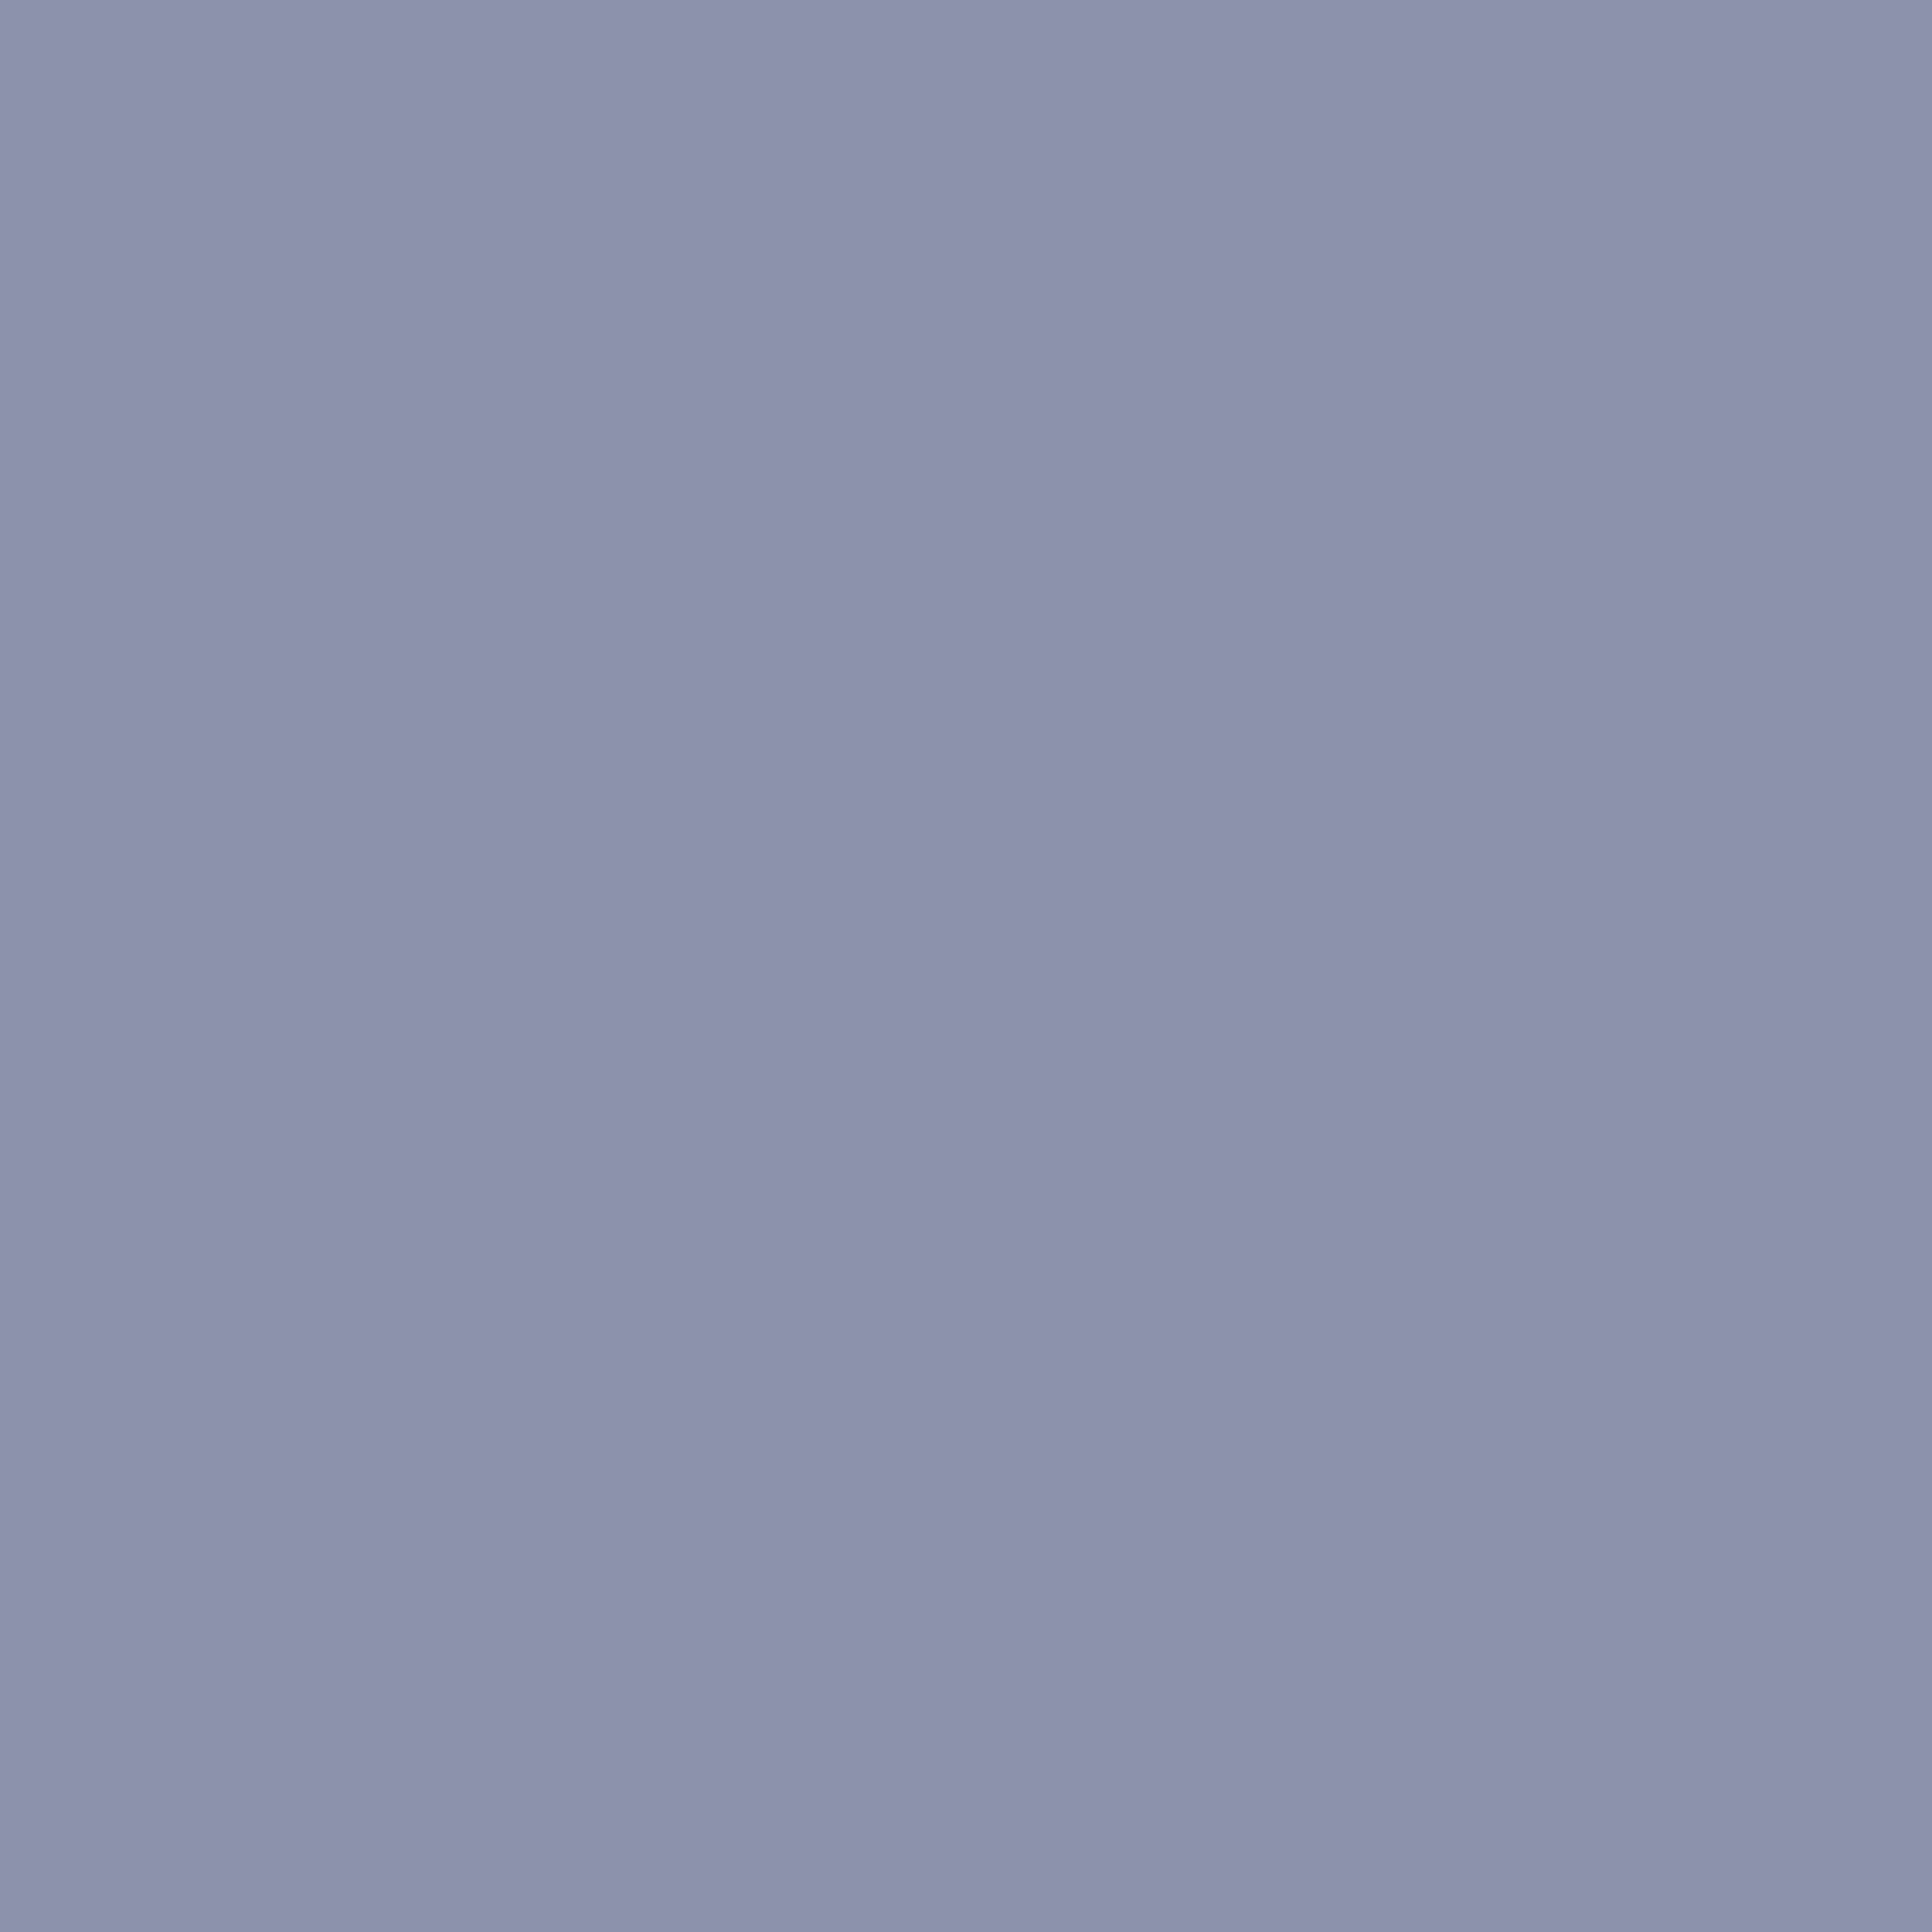 3600x3600 Gray-blue Solid Color Background